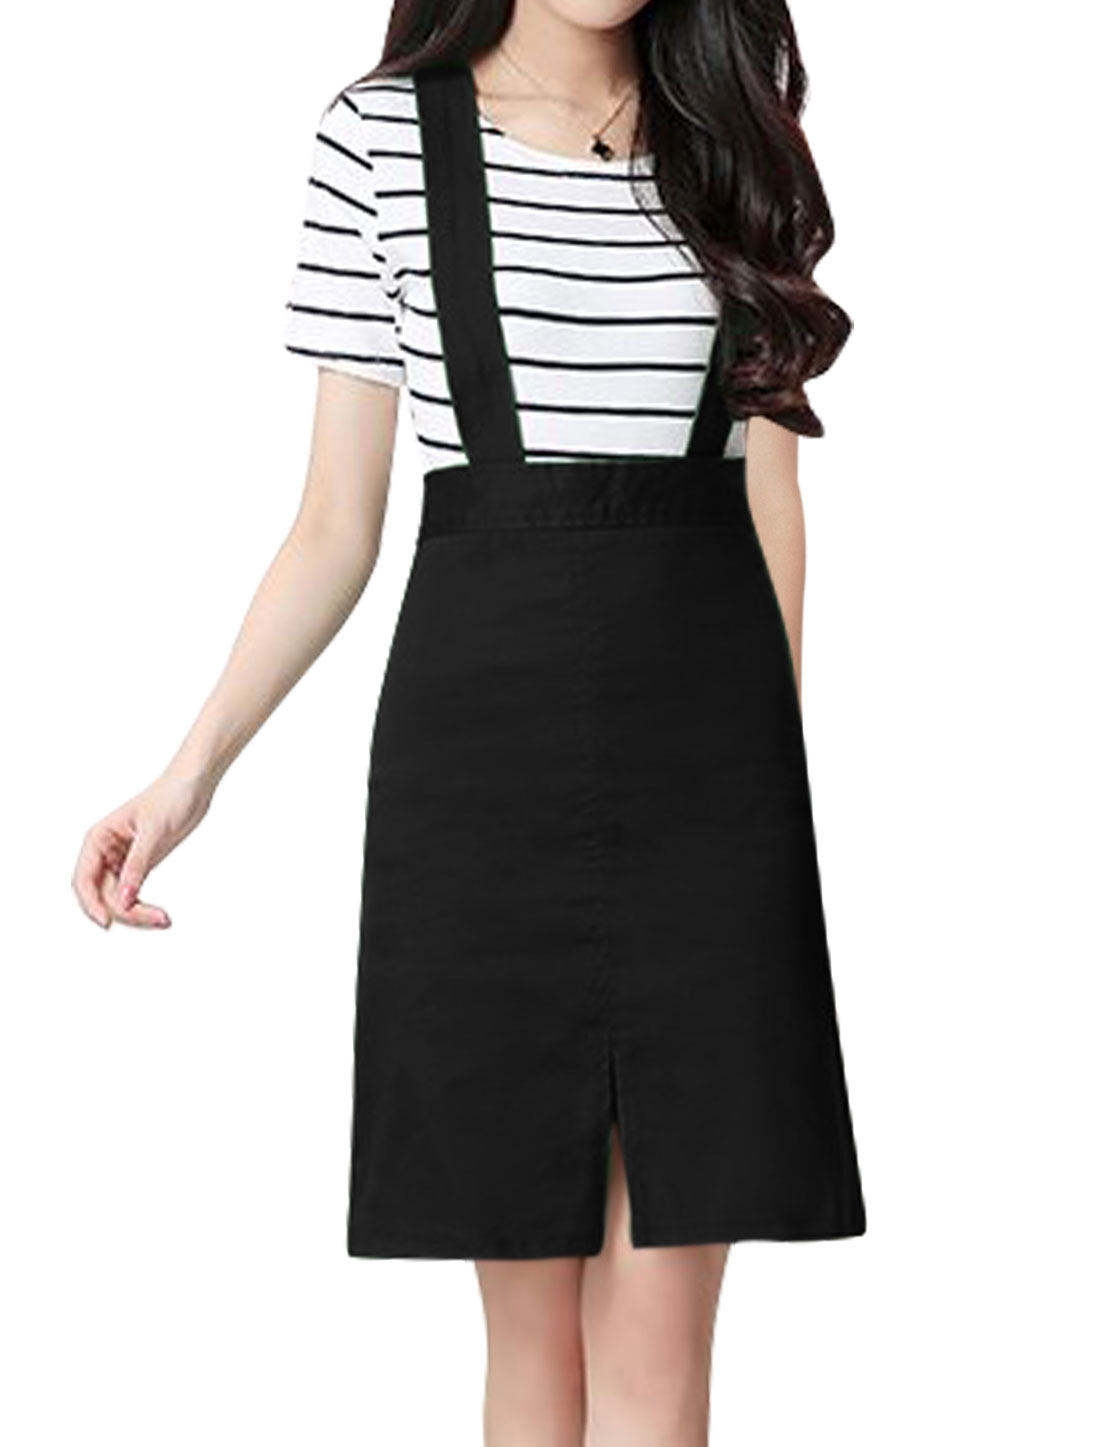 Women Detachable Straps Split Front A Line Suspender Skirt Black M